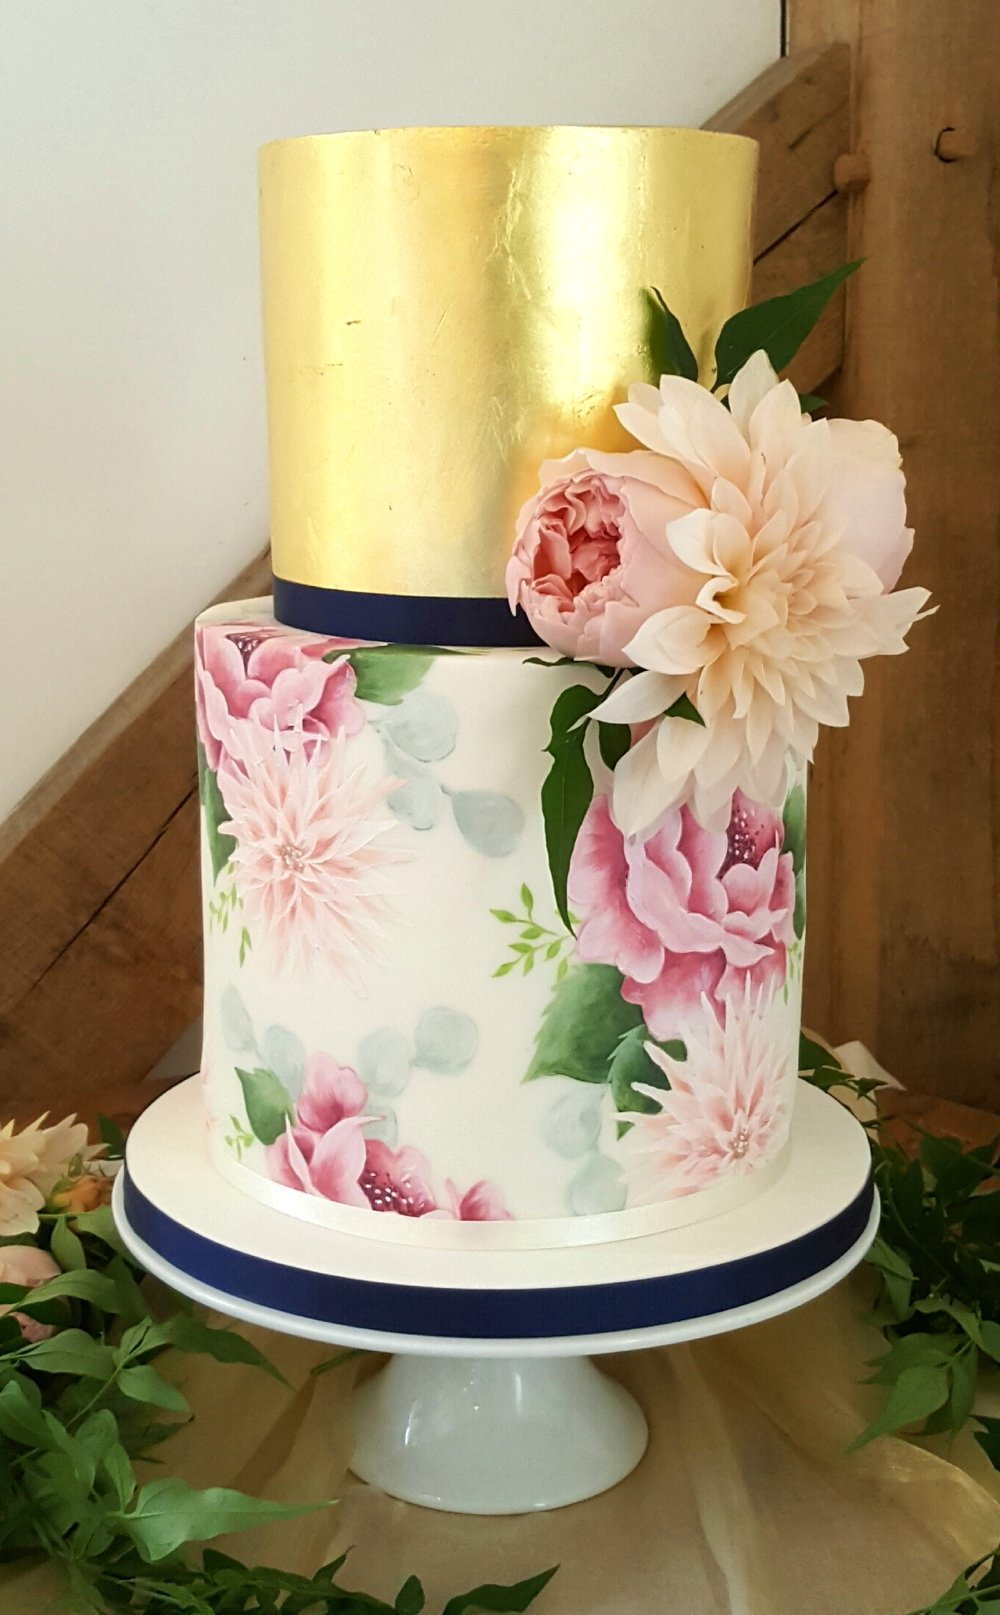 DELICATE FLORAL AND GOLD  A perfectly petite 2 tier wedding cake hand painted with an all over floral design featuring roses and dahlias. The top tier is completely covered in decadent, edible 24ct gold leaf and finished with fresh flowers to compliment the cake.